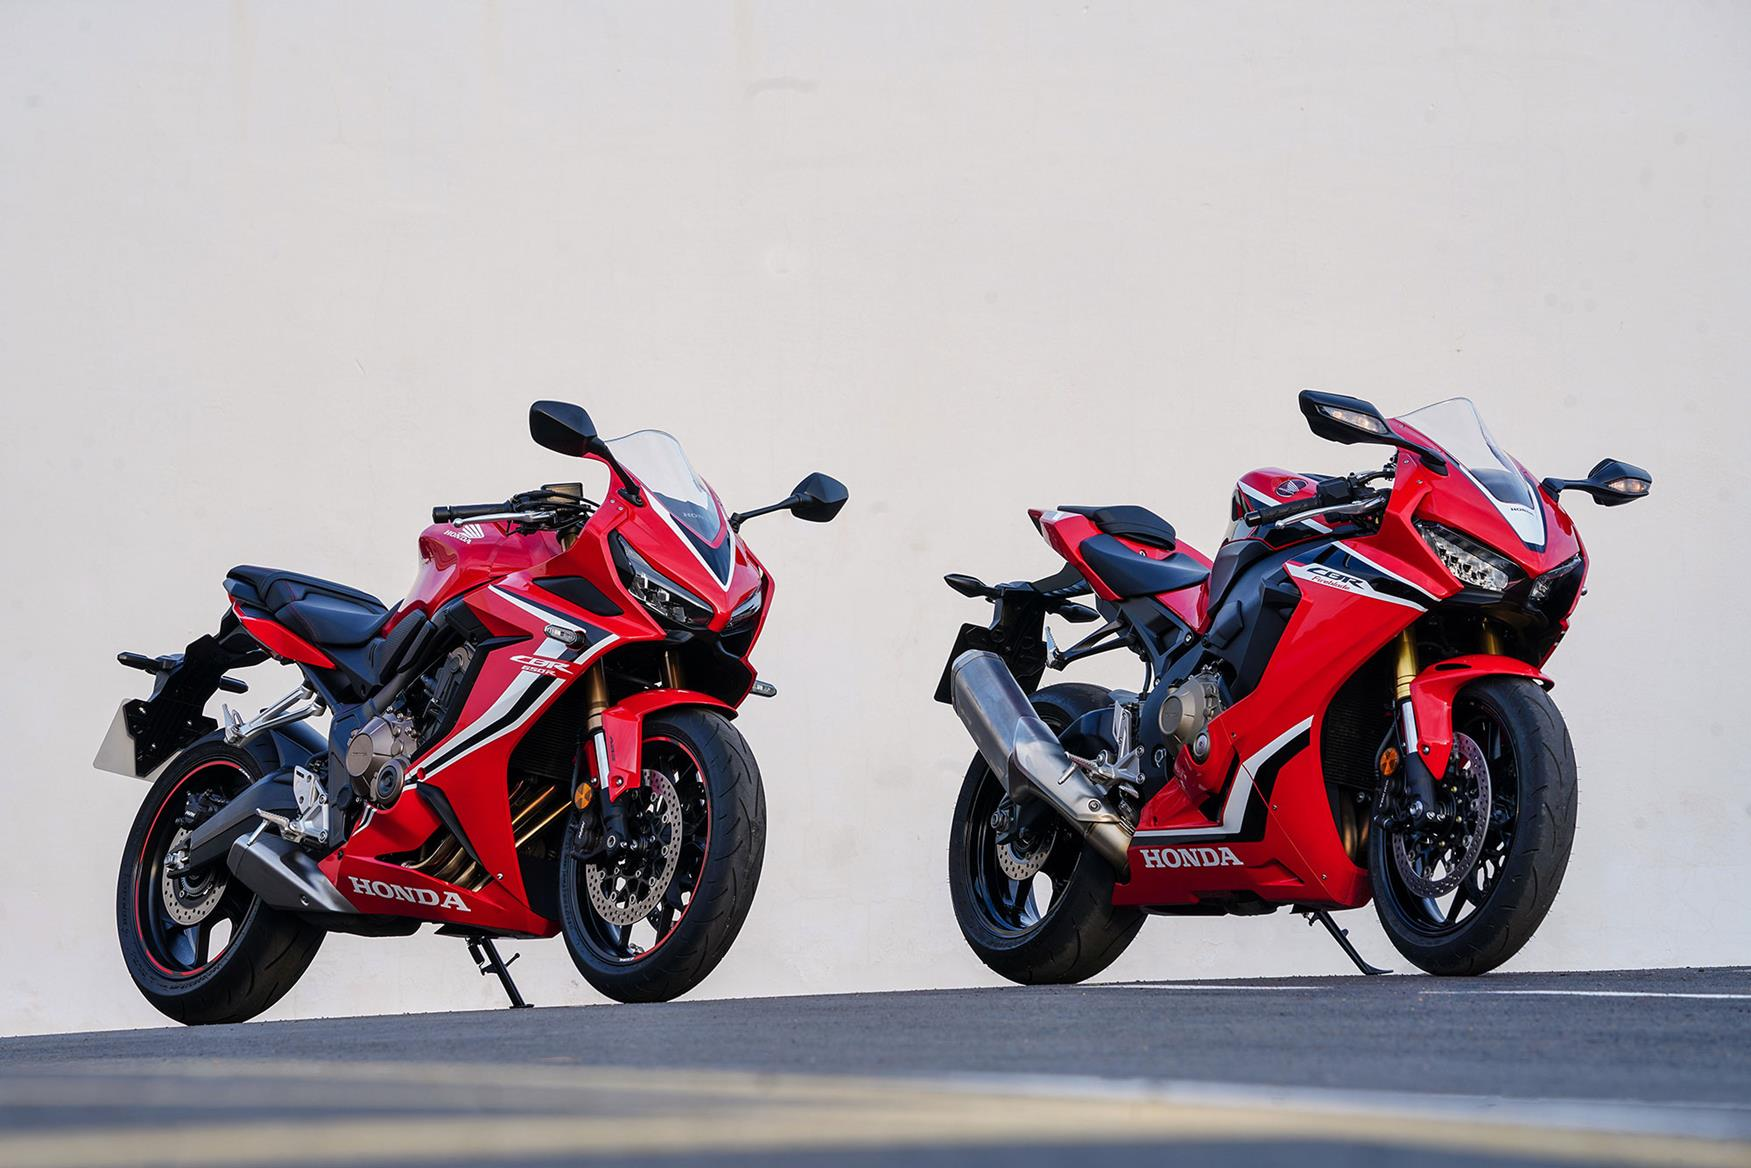 The Honda CBR650R with the Honda CBR1000RR Fireblade